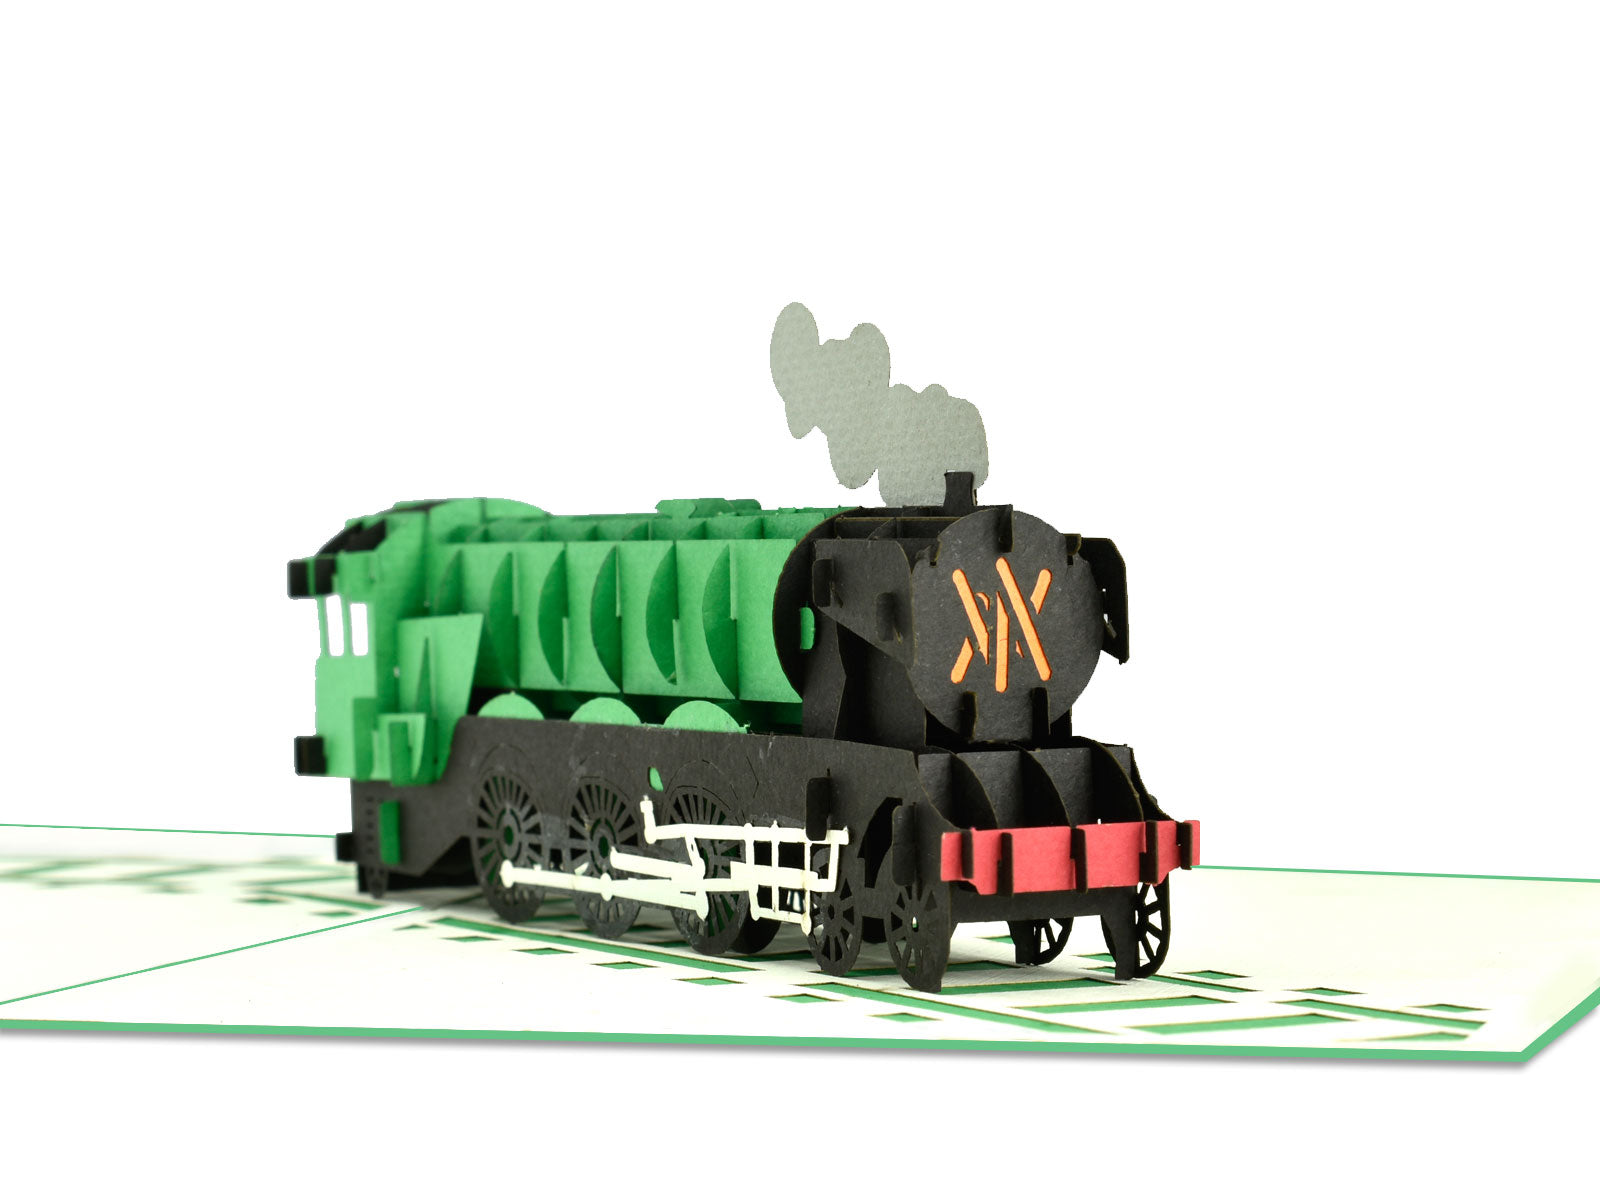 Flying-Scotman Train 3D Creative Pop Up Card